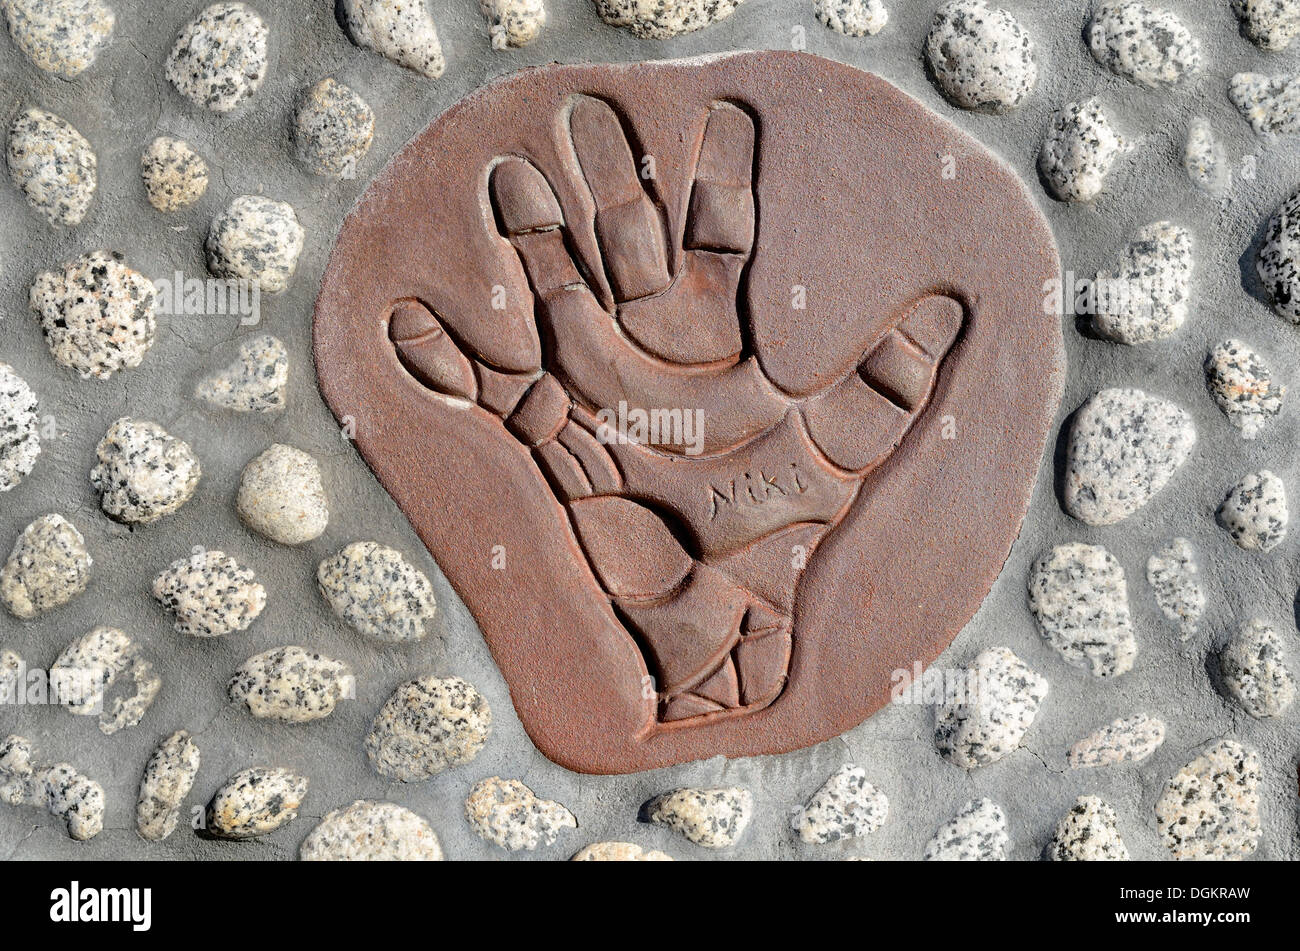 Handprint as a signature of the art work, Queen Califa's Magical Circle, late work of French sculptor Niki de Saint Phalle - Stock Image